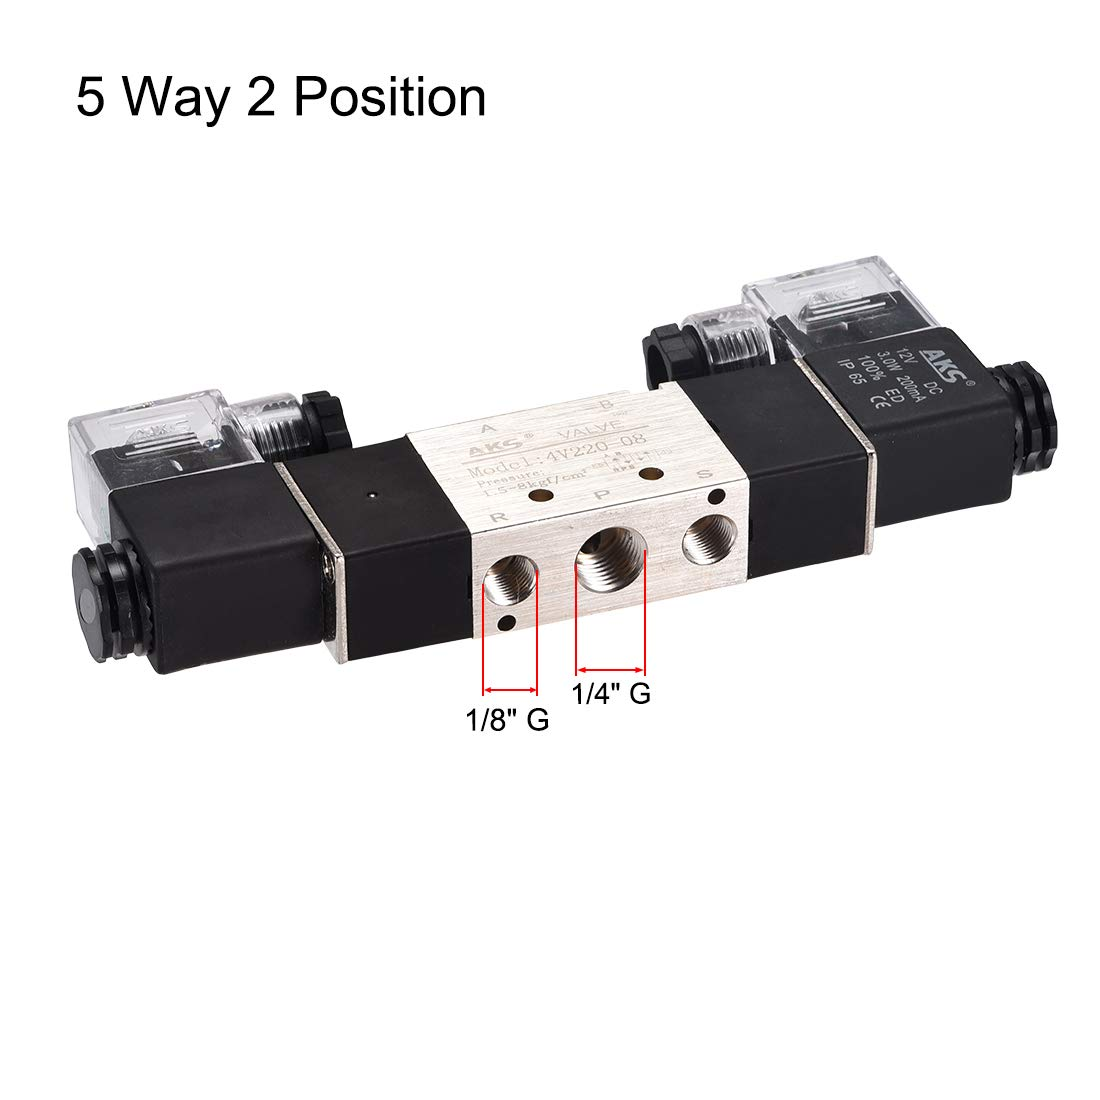 uxcell DC 12V 5 Way 2 Position 3//8 inchesPT,Pneumatic Air Solenoid Valve,Double Electrical Control,Internally Piloted Acting Type,Red Light,4V320-10